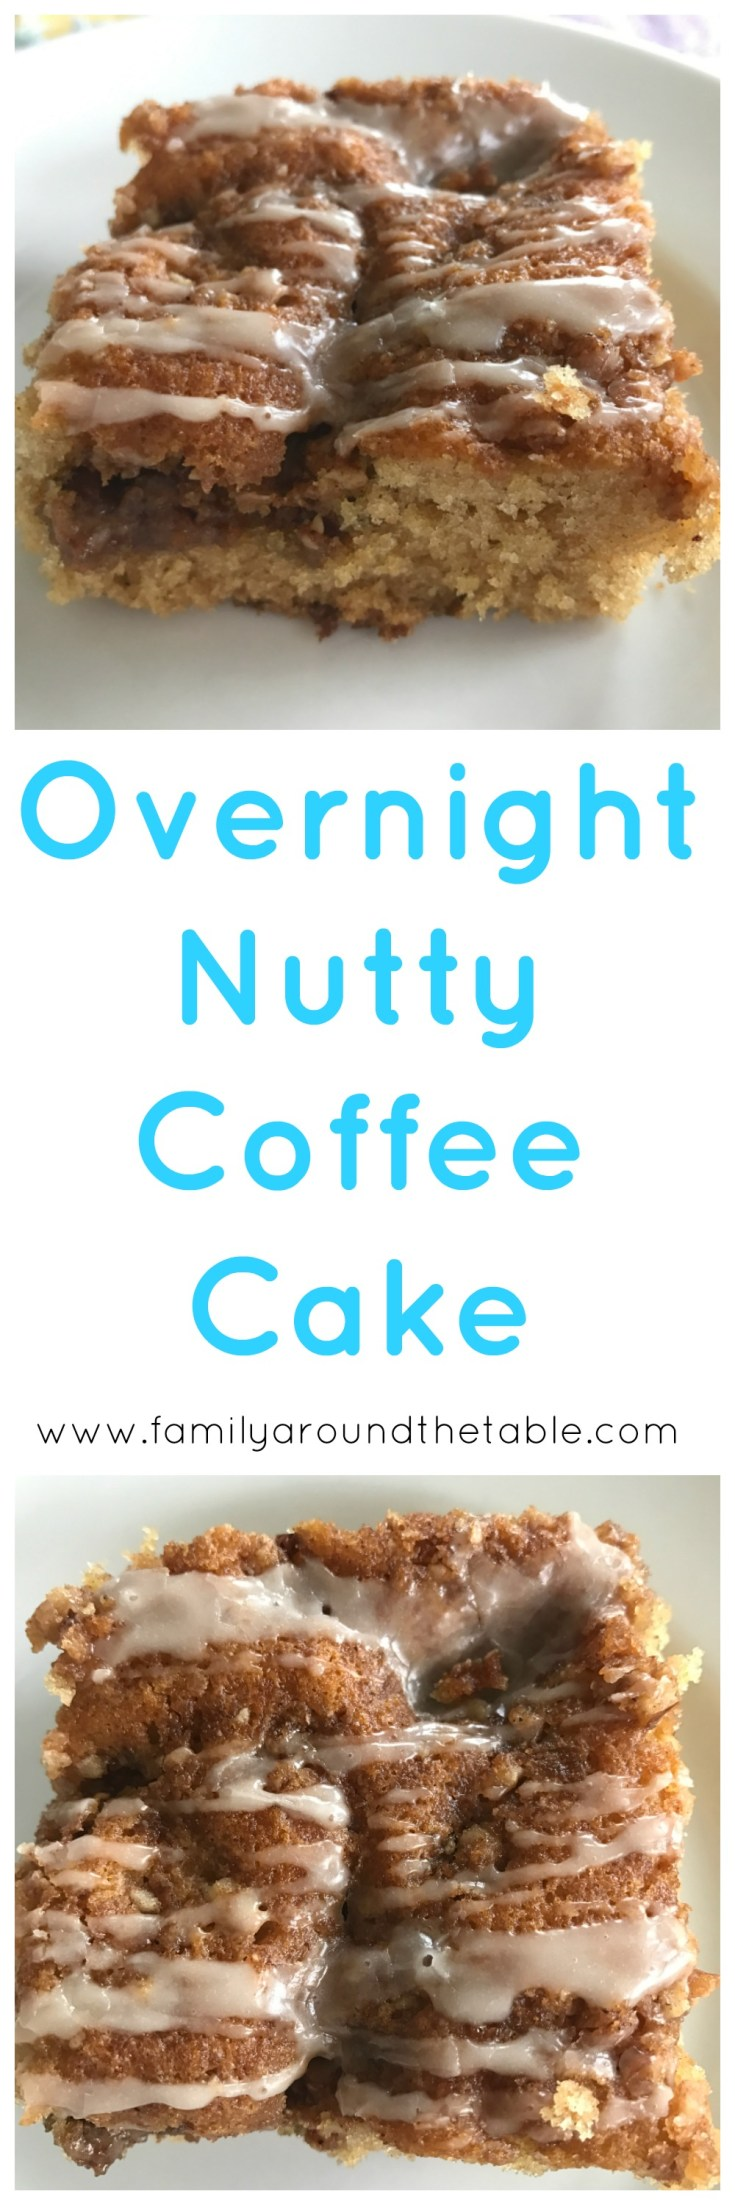 Overnight nutty coffee cake is perfect for overnight guest.